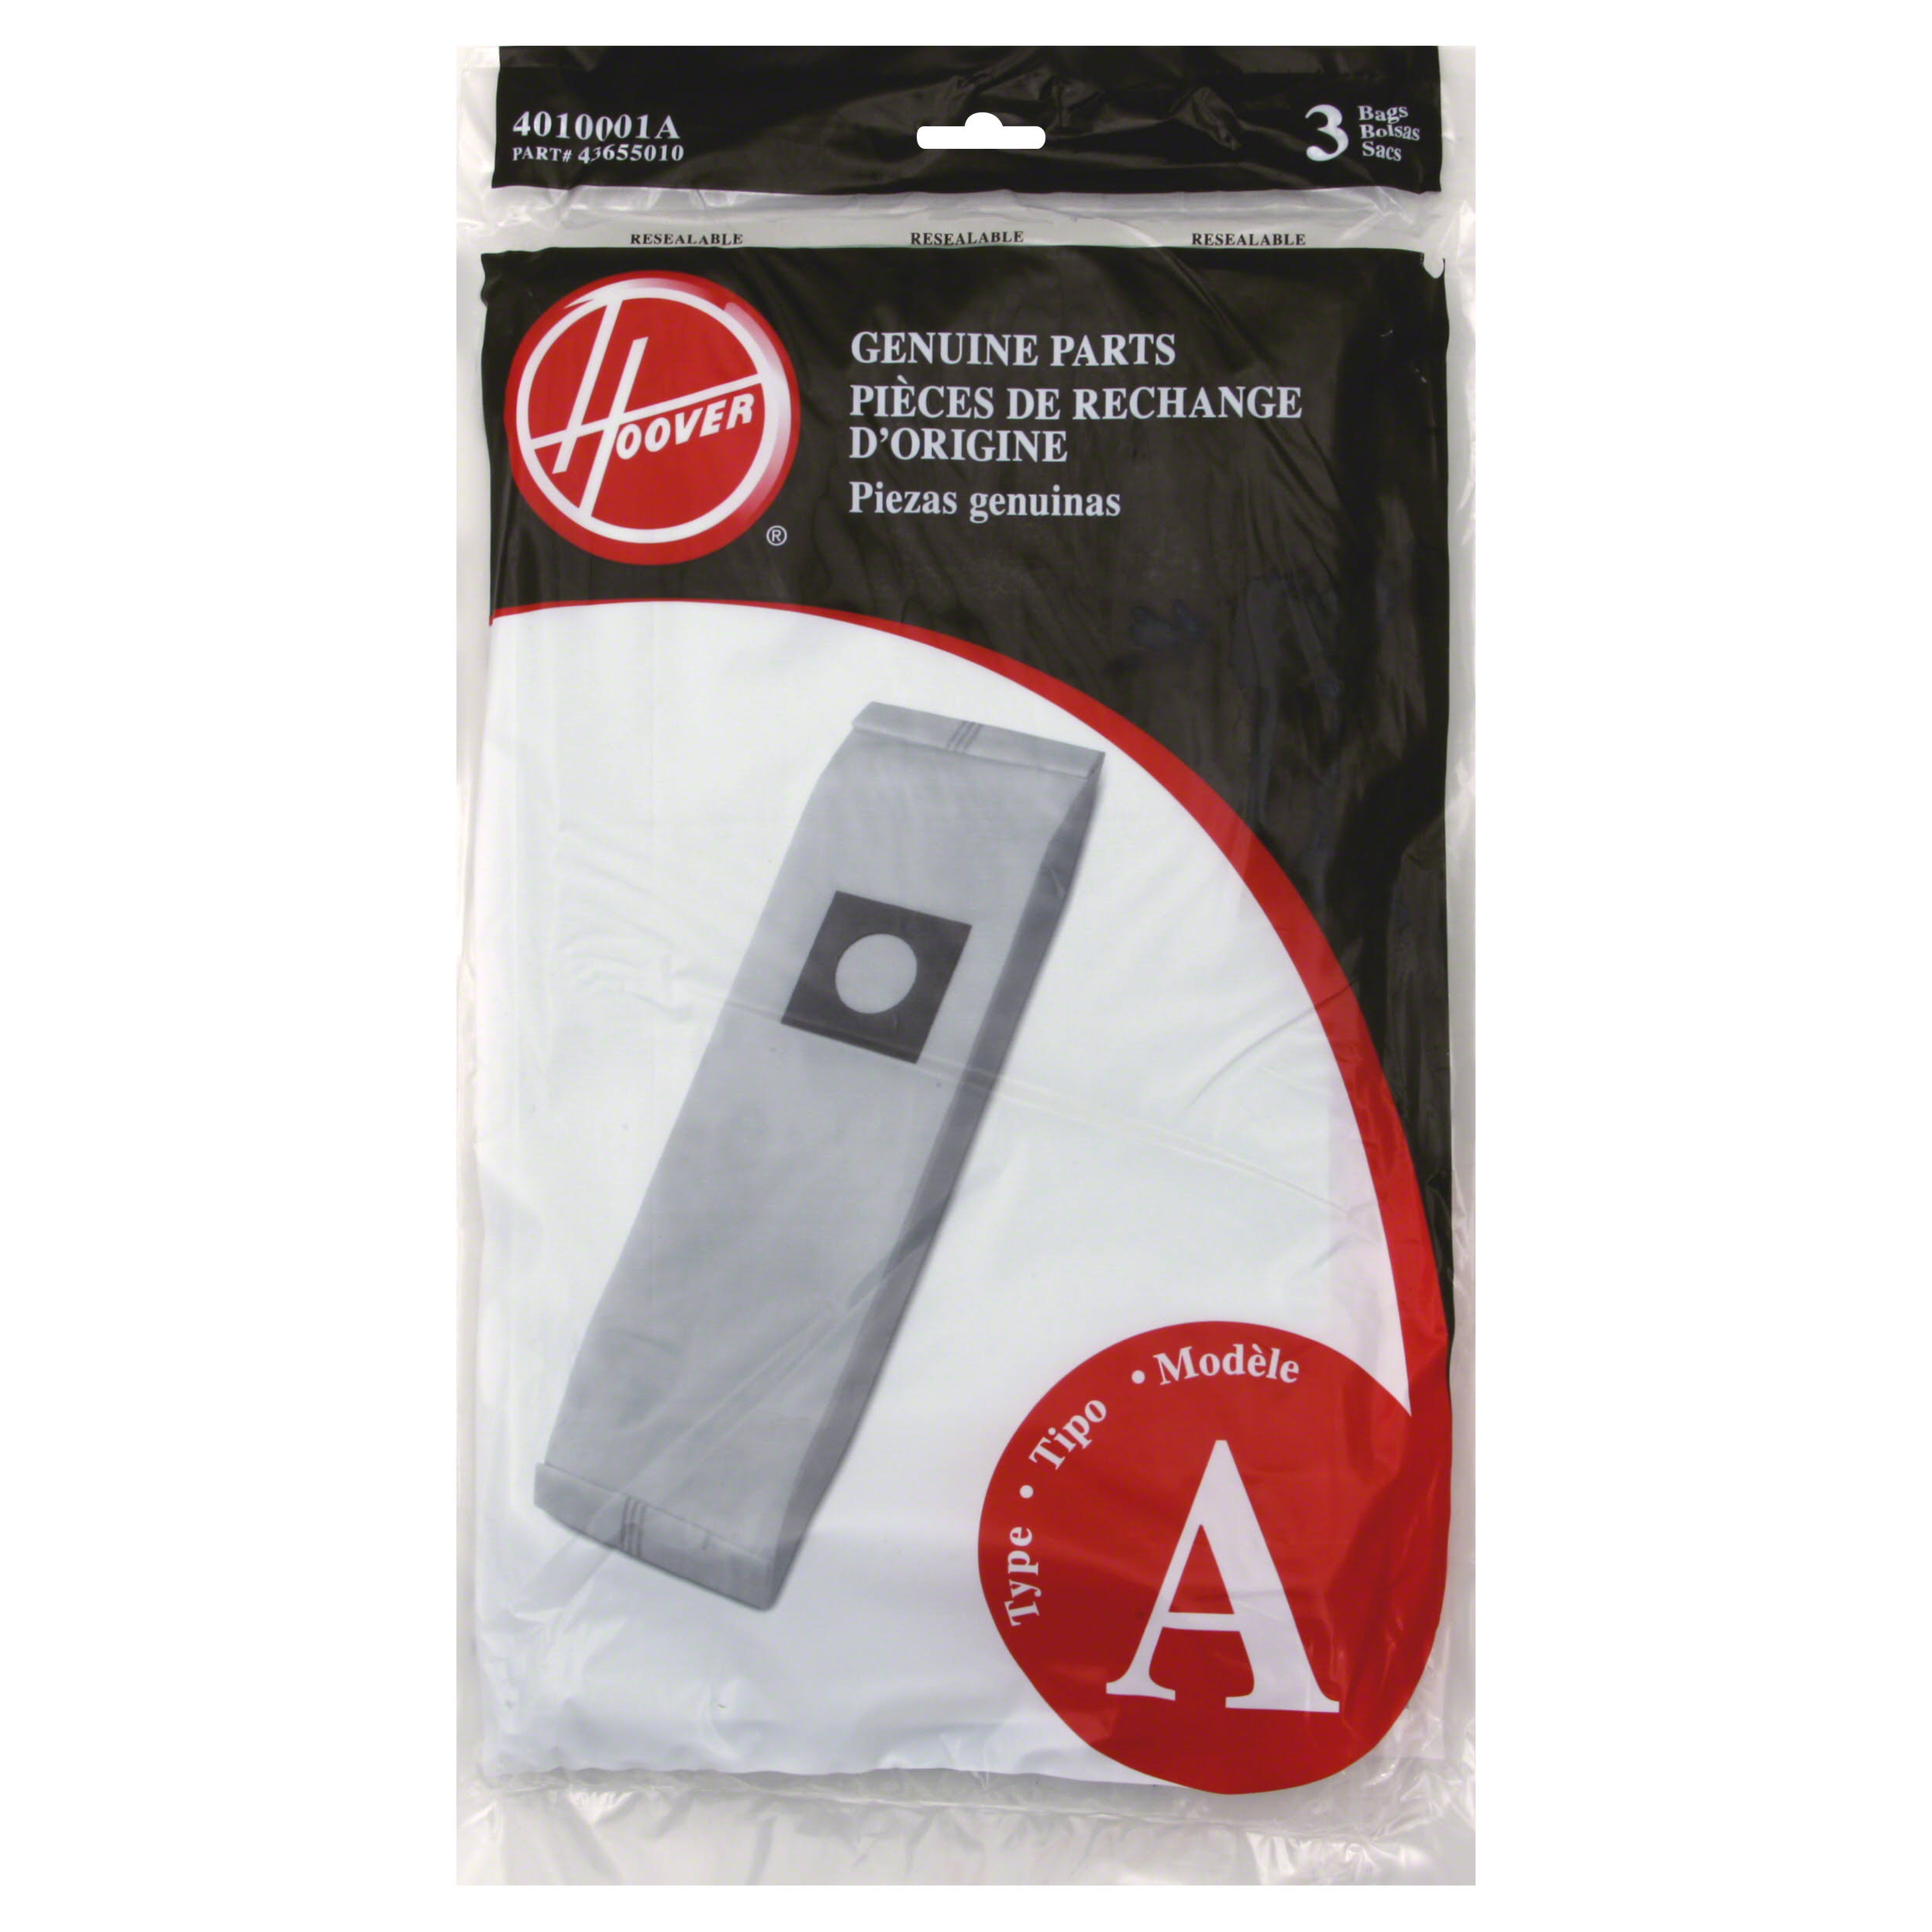 Hoover Genuine Hoover Filter Bags - Type A, 3 Filter Bags